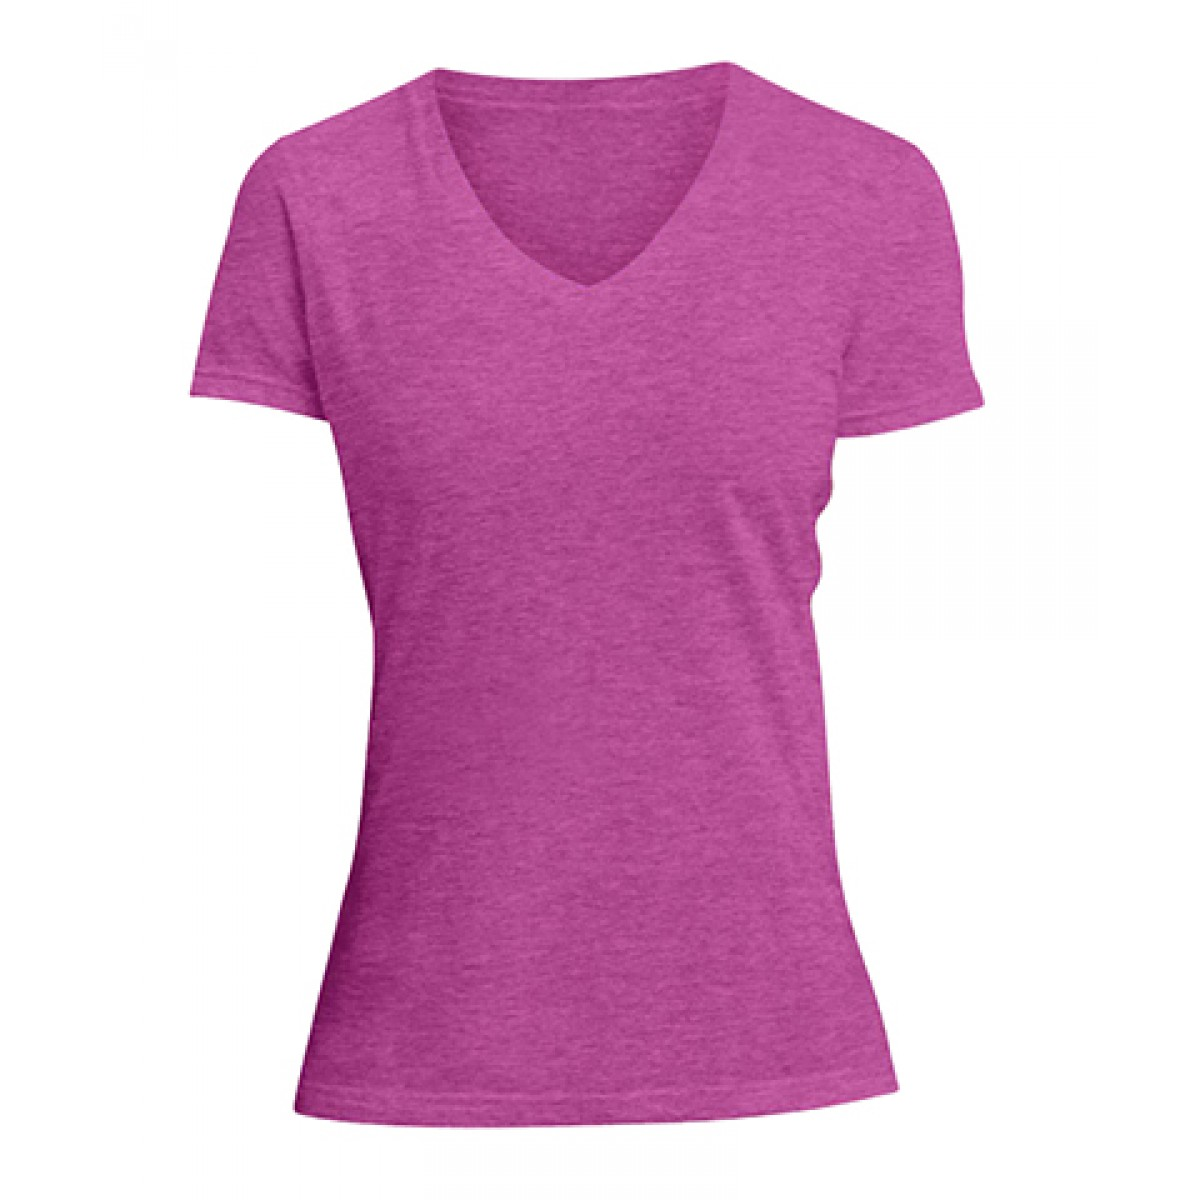 Ladies V-Neck Tee-Heathered Fuscia-M